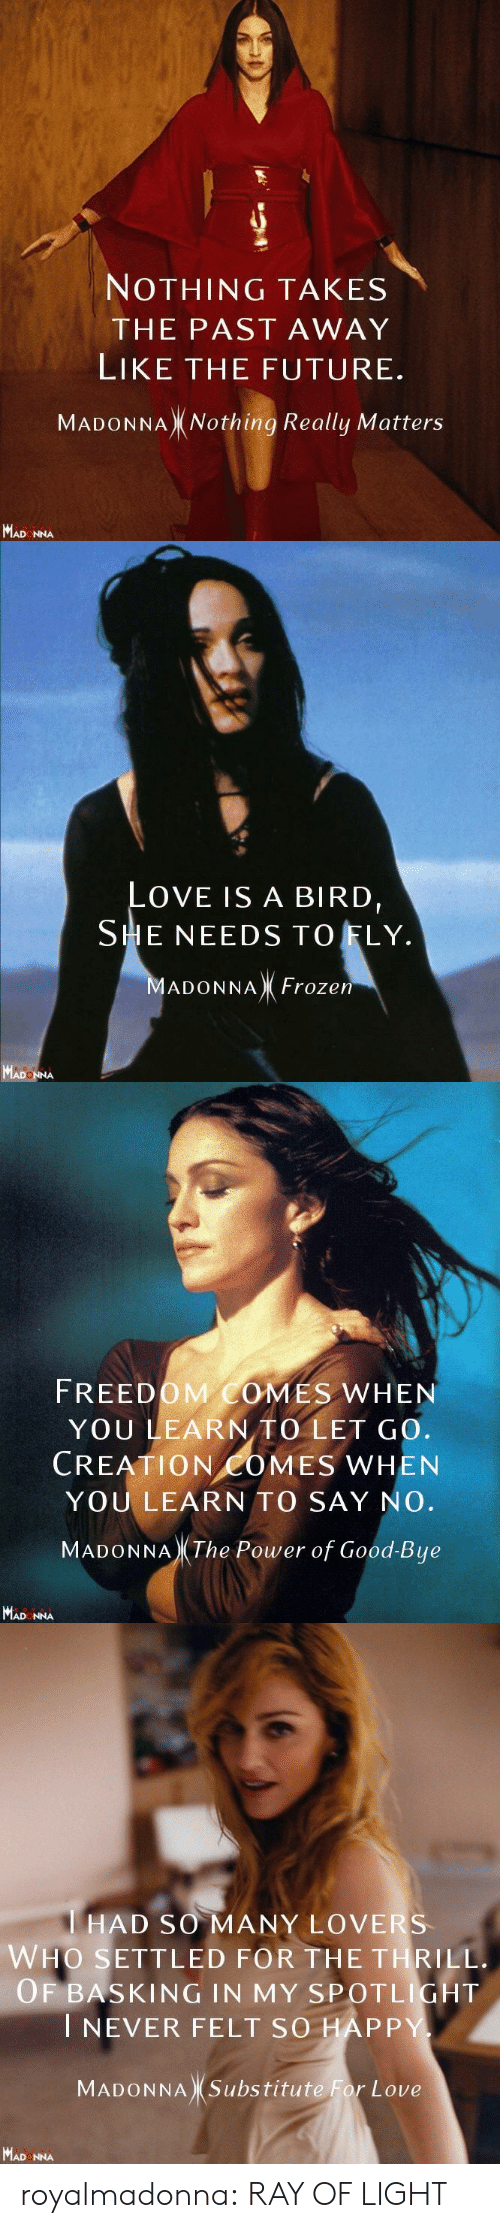 Frozen, Future, and Love: NOTHING TAKES  THE PAST AWAY  LIKE THE FUTURE.  MADONNAX Nothing Really Matters  MAD NNA   OVE IS A BIRD  SHE NEEDS TO FLY.  ADONNA Frozen  MADON   FREEDOM COMES WHEN  YOU LEARN TO LET GO.  CREATION COMES WHEN  YOULEARN TO SAY NO.  MADONNA The Power of Good-Bue  MAD NNA   HAD SO MANY LOVERS  WHO SETTLED FOR THE THRILL.  OF BASKING IN MY SPOTLİGHT  I NEVER FELT SO HAP P  MADONNA Substitute For Love  MAD NNA royalmadonna:  RAY OF LIGHT